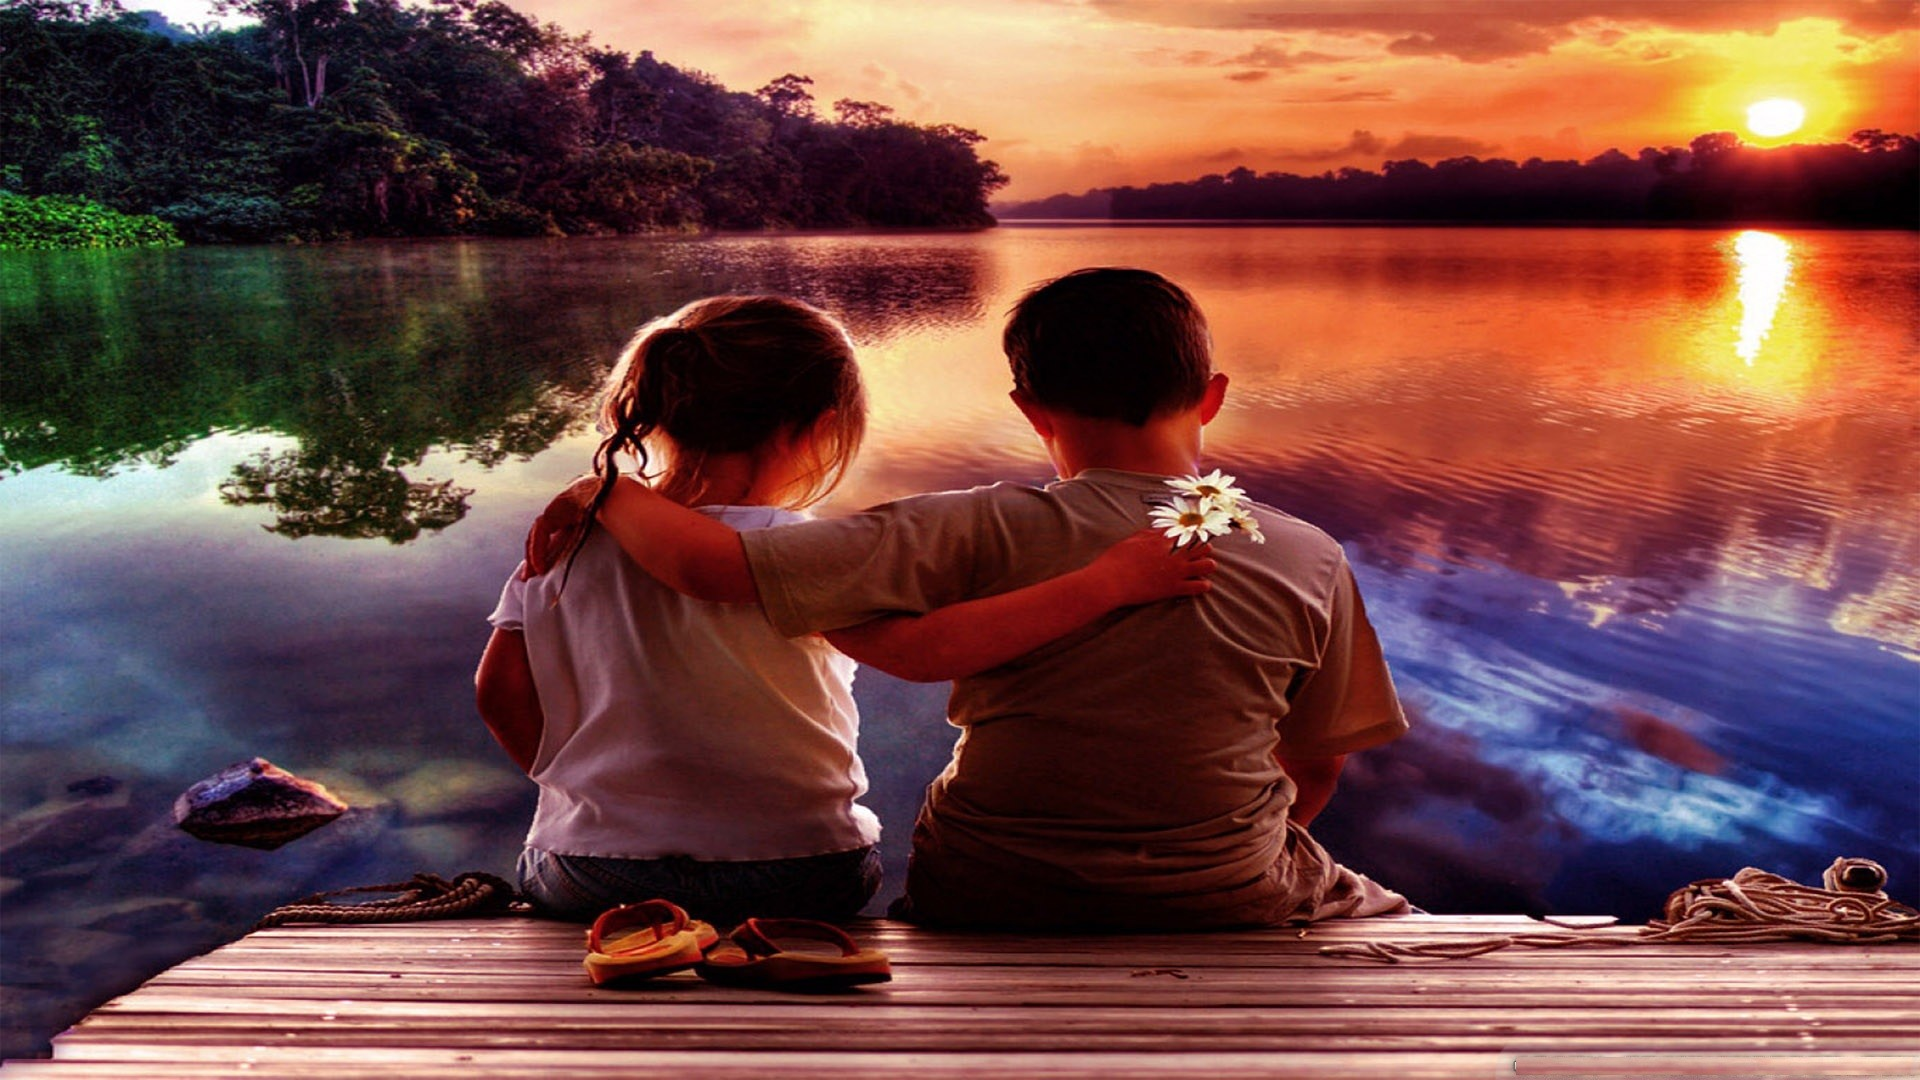 Romantic Hd Wallpapers: Cute Romantic Wallpapers (62+ Images